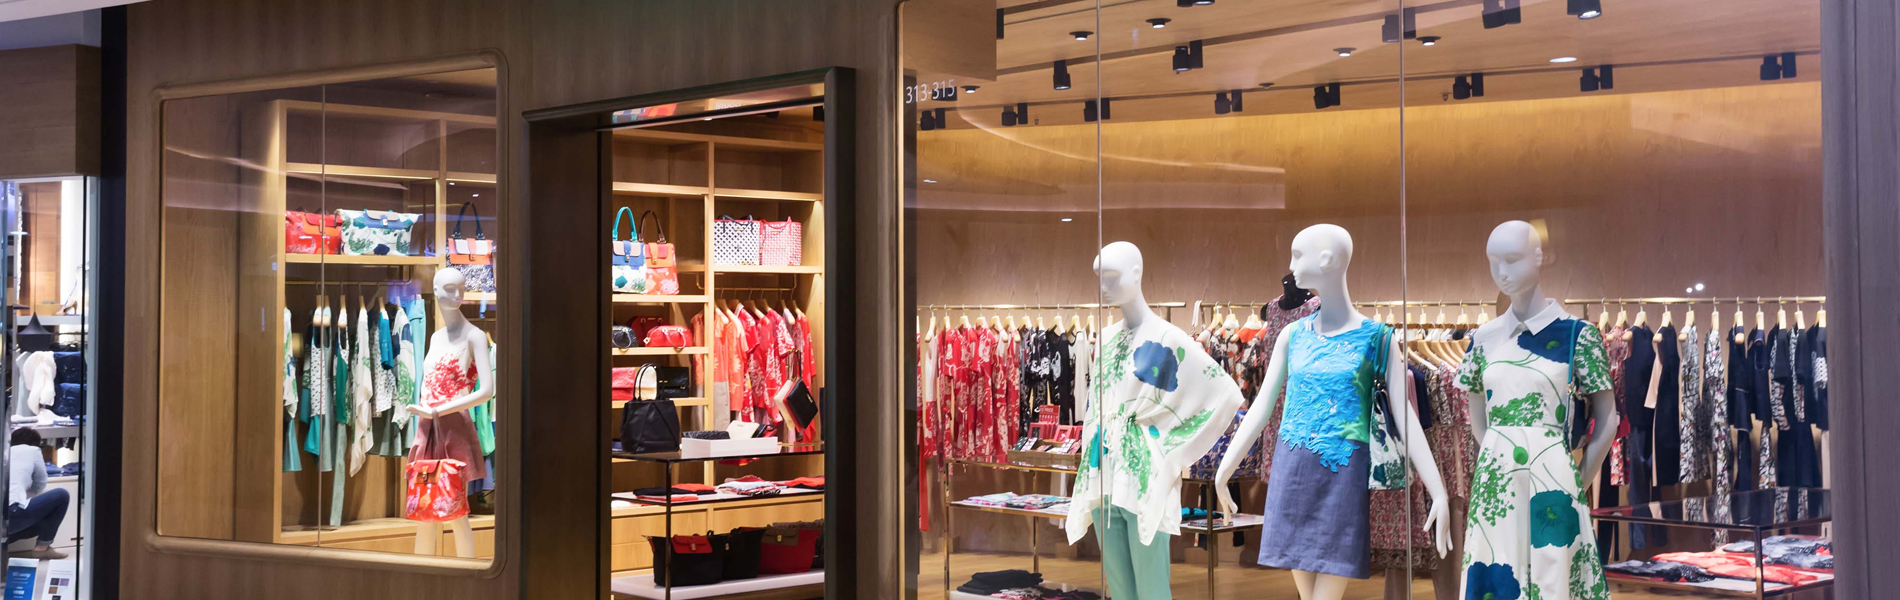 shop-front-display-glass